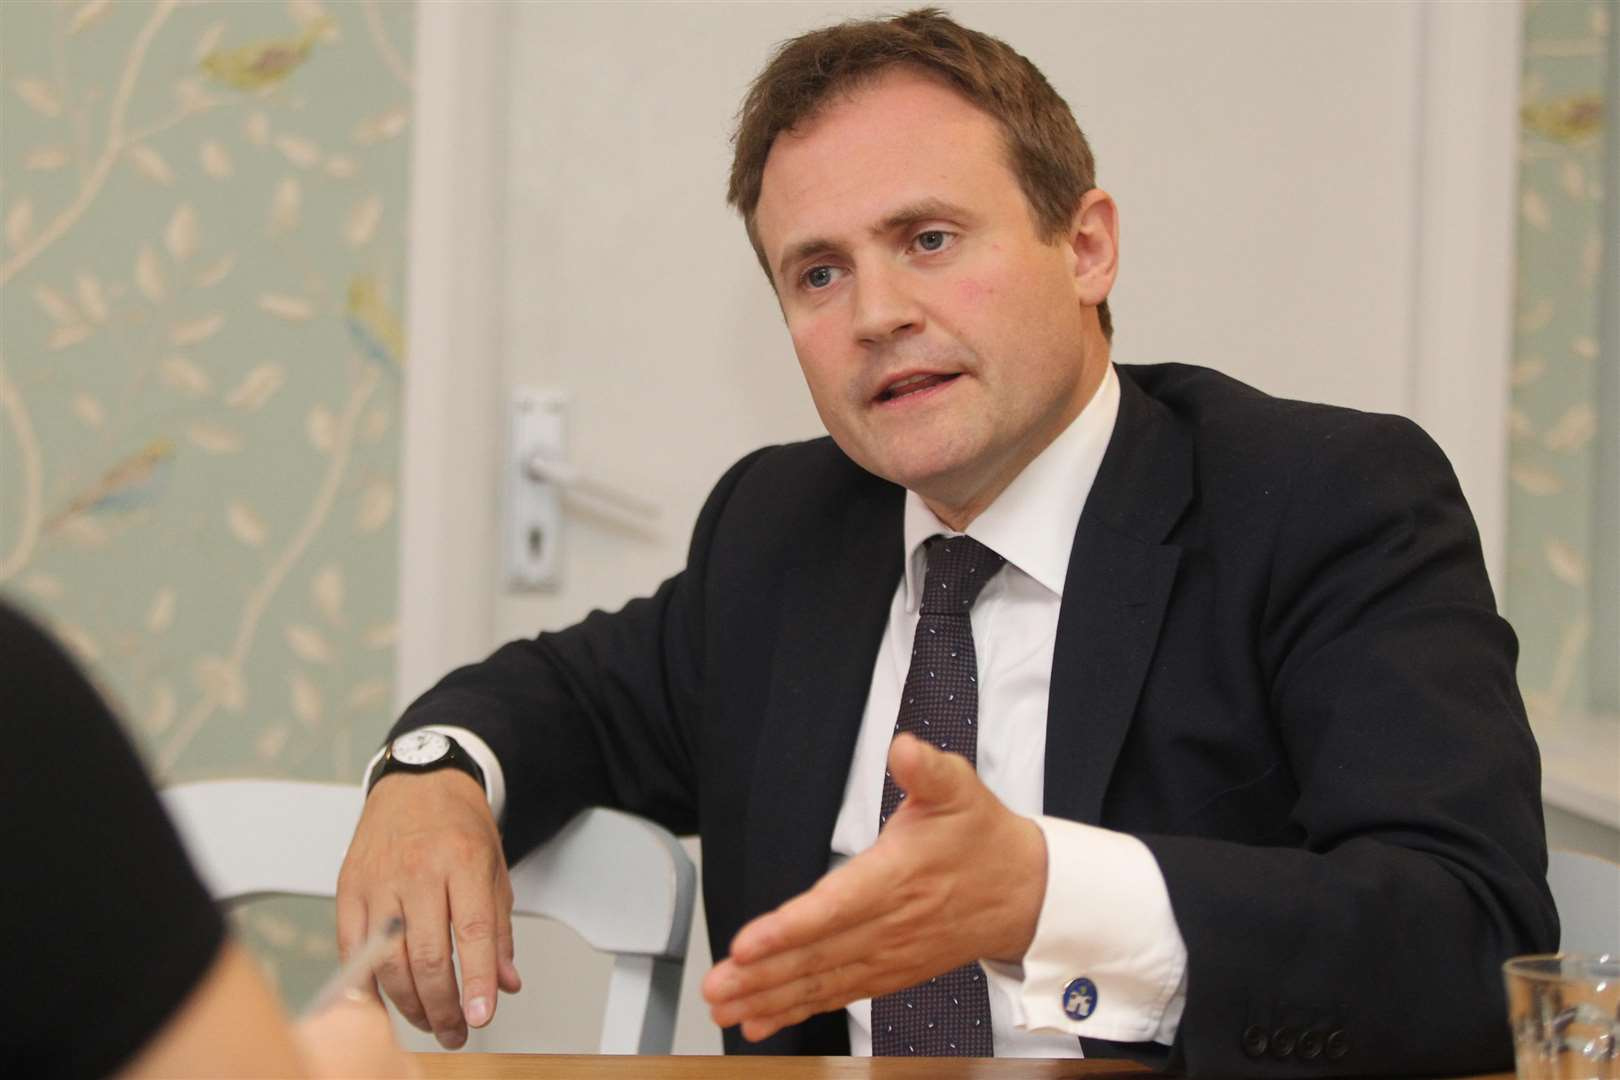 Nigeria news : Gowon took half of #CBN to UK, Nigerian officials have loot here – MP Tugendhat